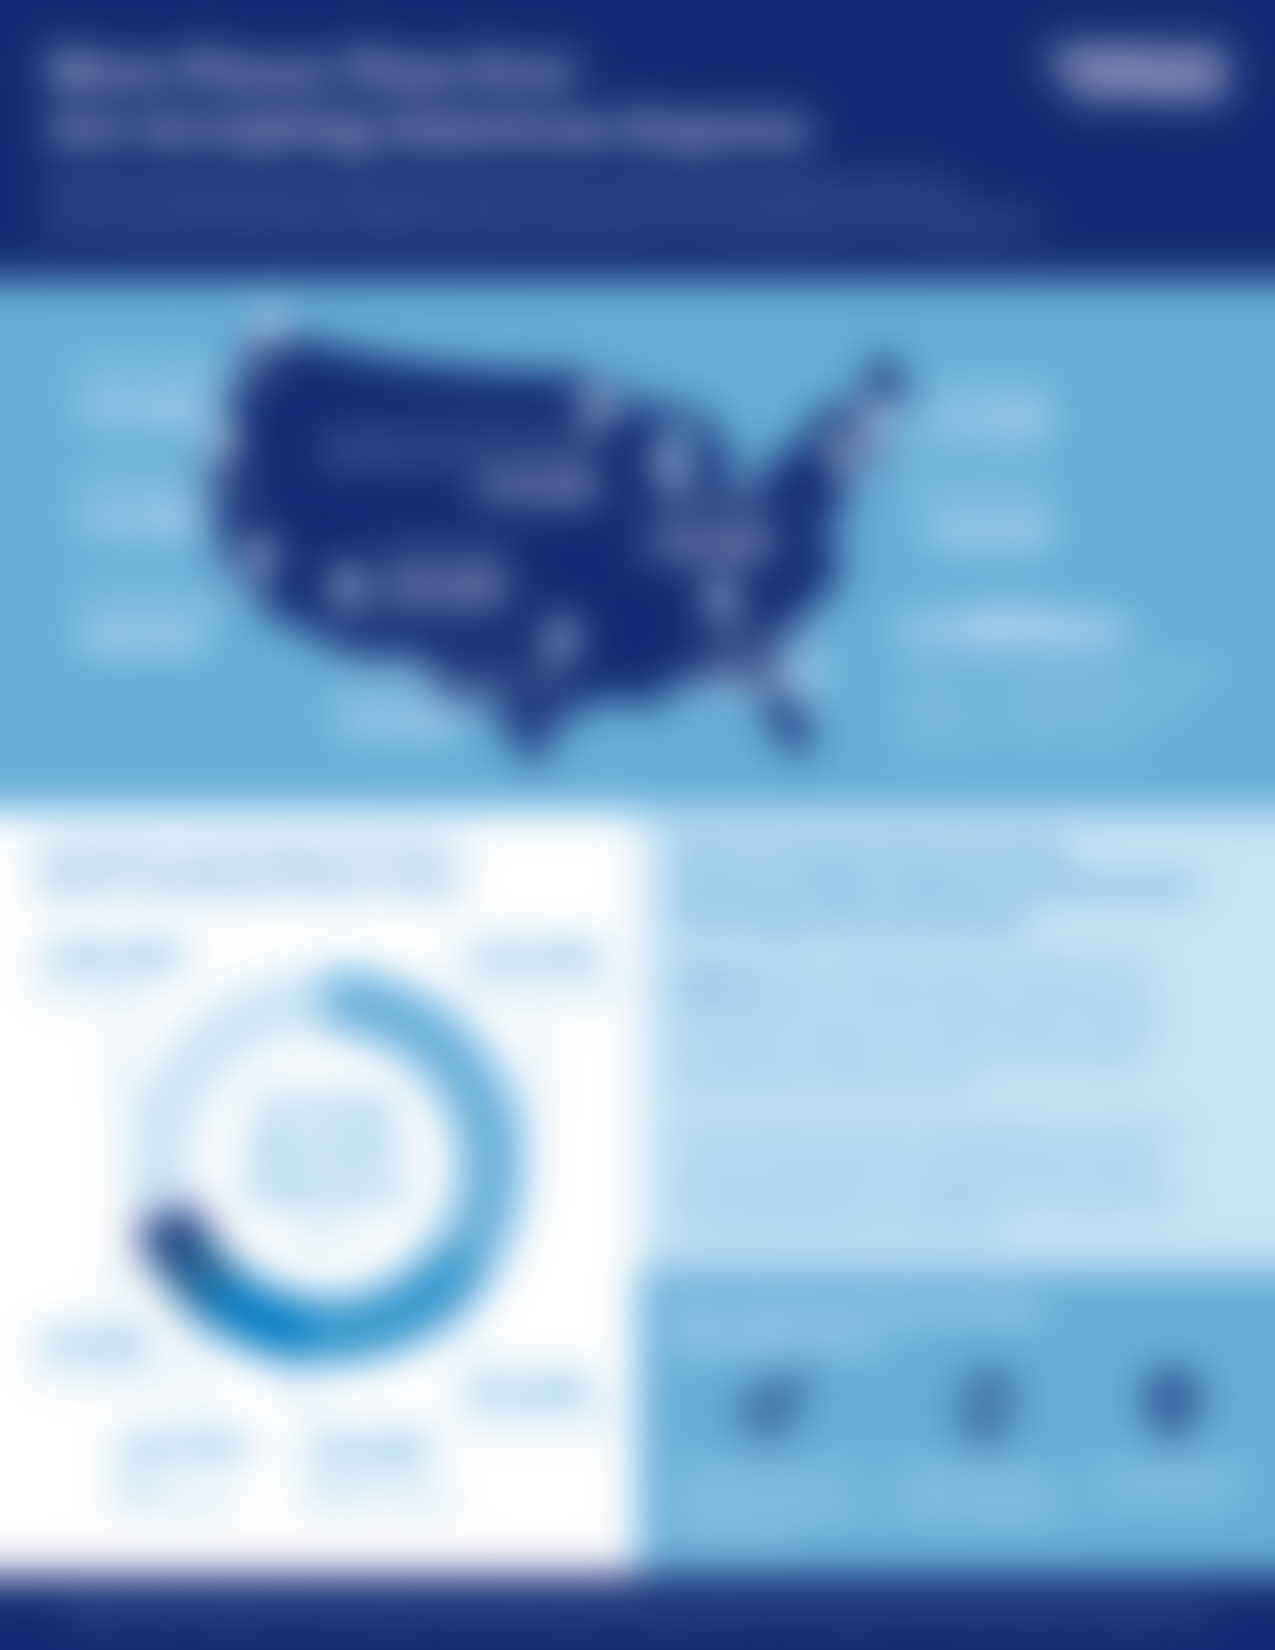 Payments study fact sheet published by American Express